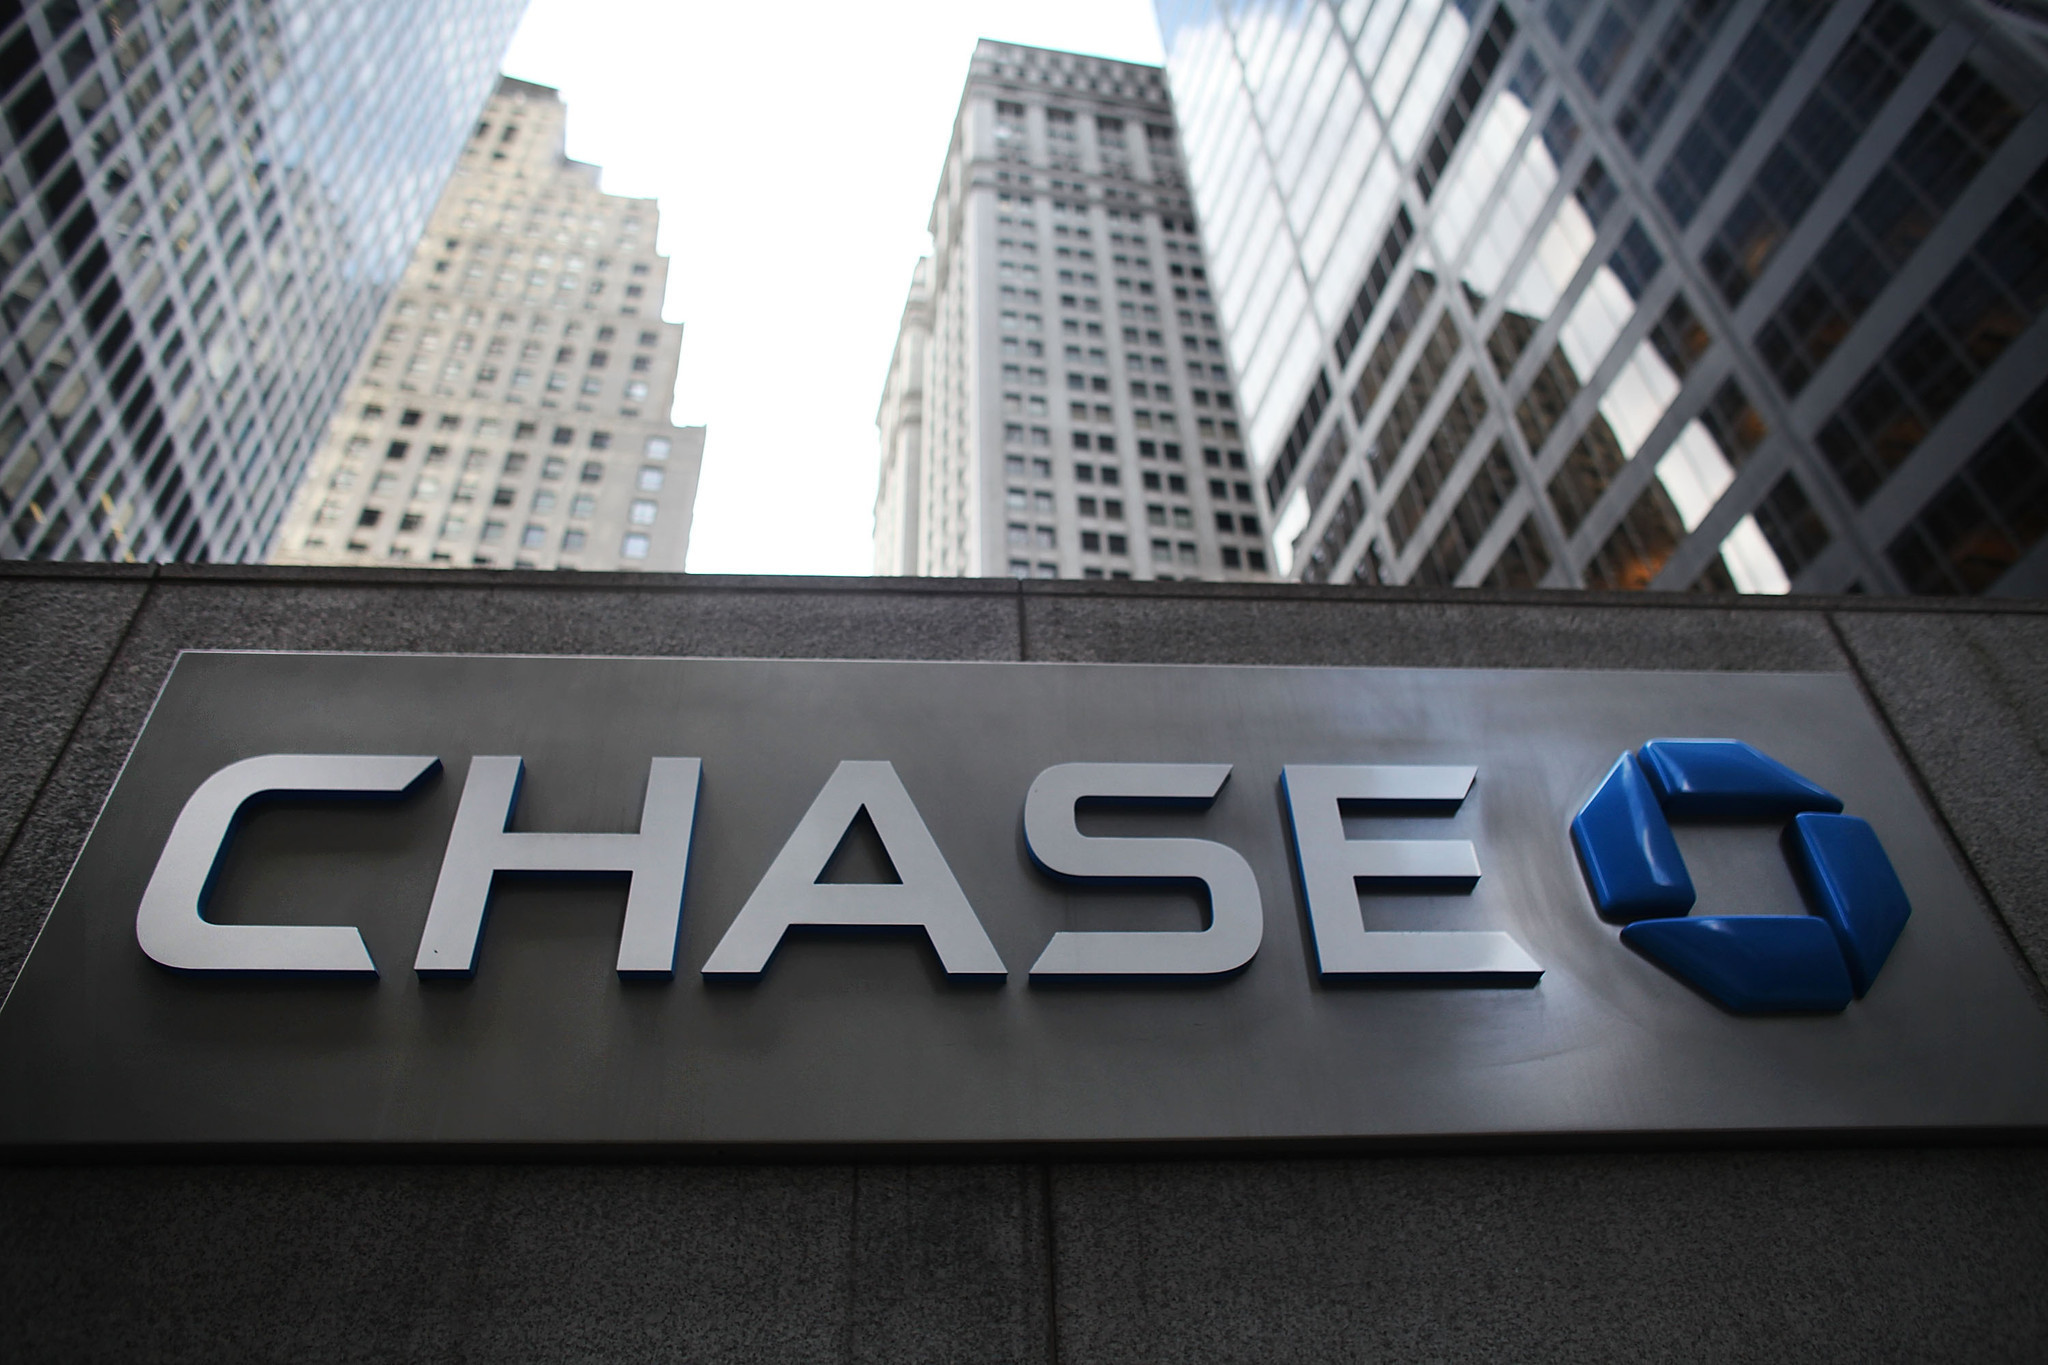 Chase raises fees on savings accounts in Illinois